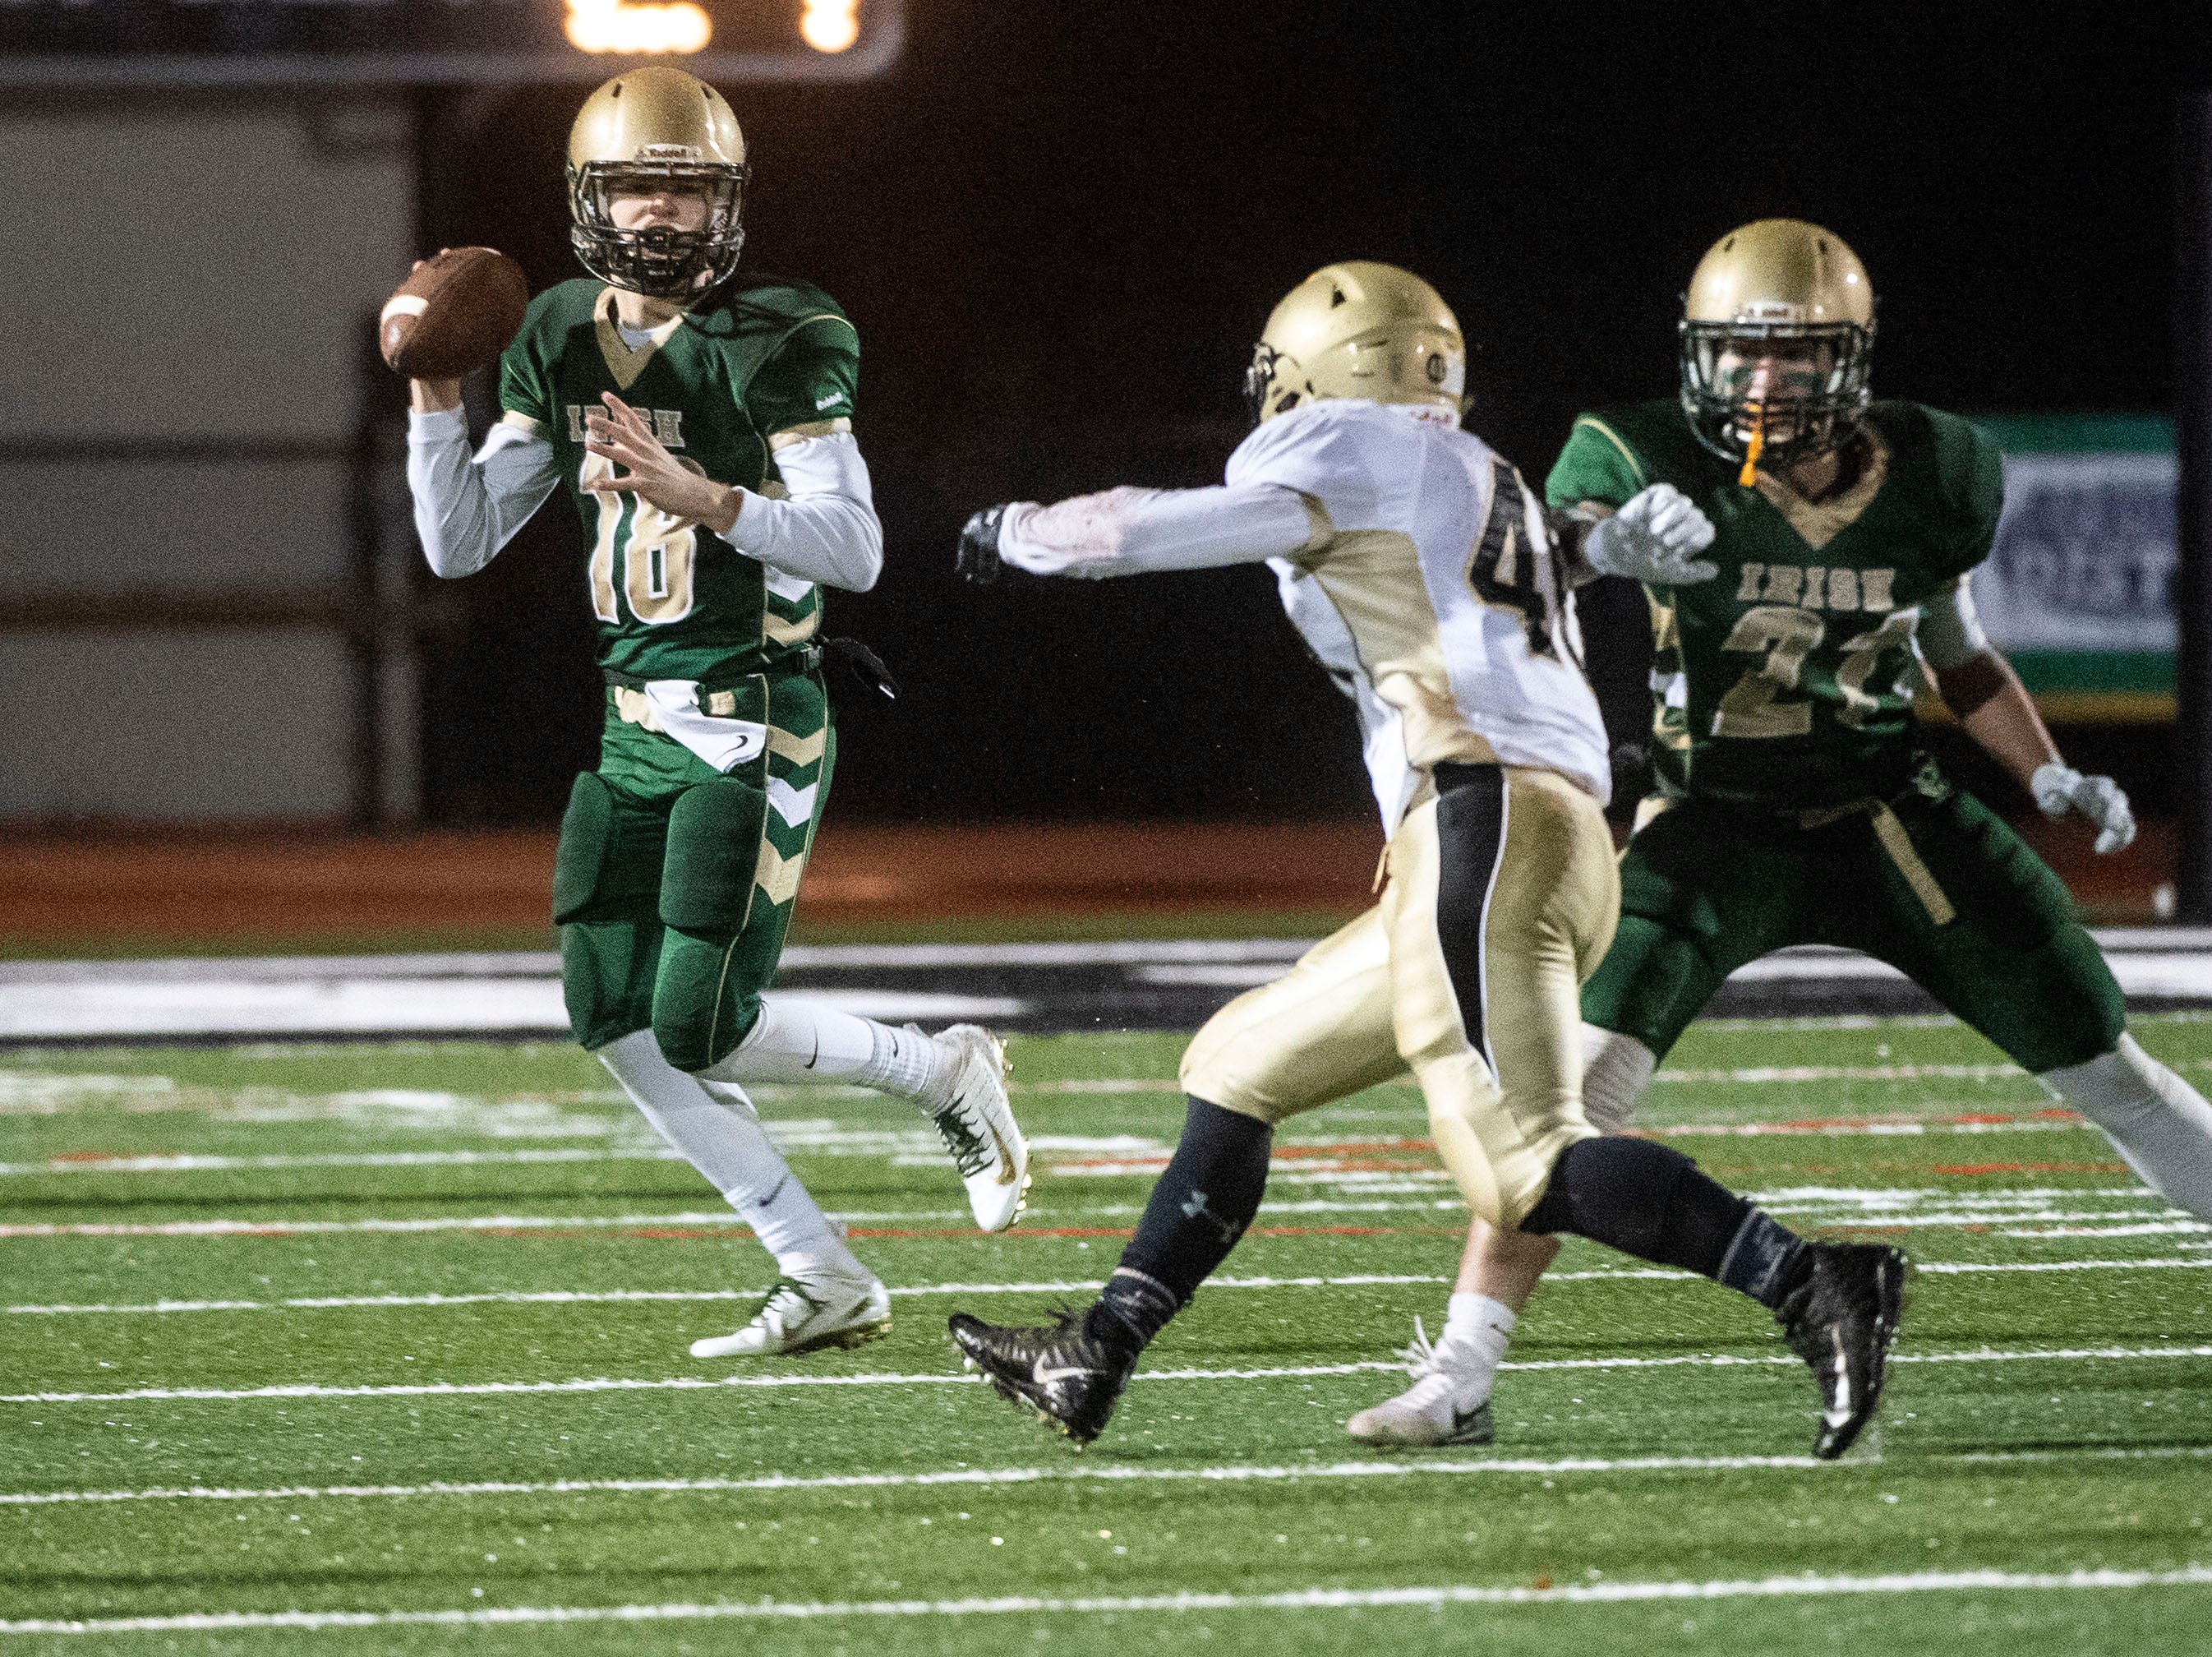 York Catholic quarterback Wesley Burns (18) looks for a pass during the District III 2A championship game at South Western High School on Nov. 9, 2018. The York Catholic Fighting Irish beat the Delone Catholic Squires in overtime, 28-21.